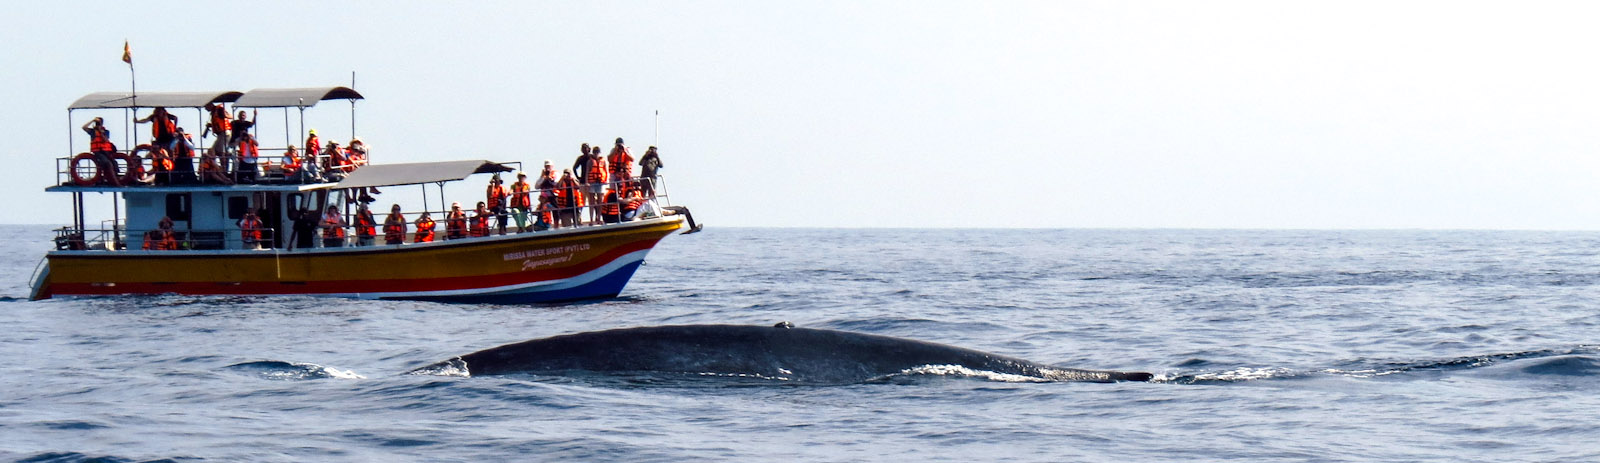 mirissa-whale-and-boat-long